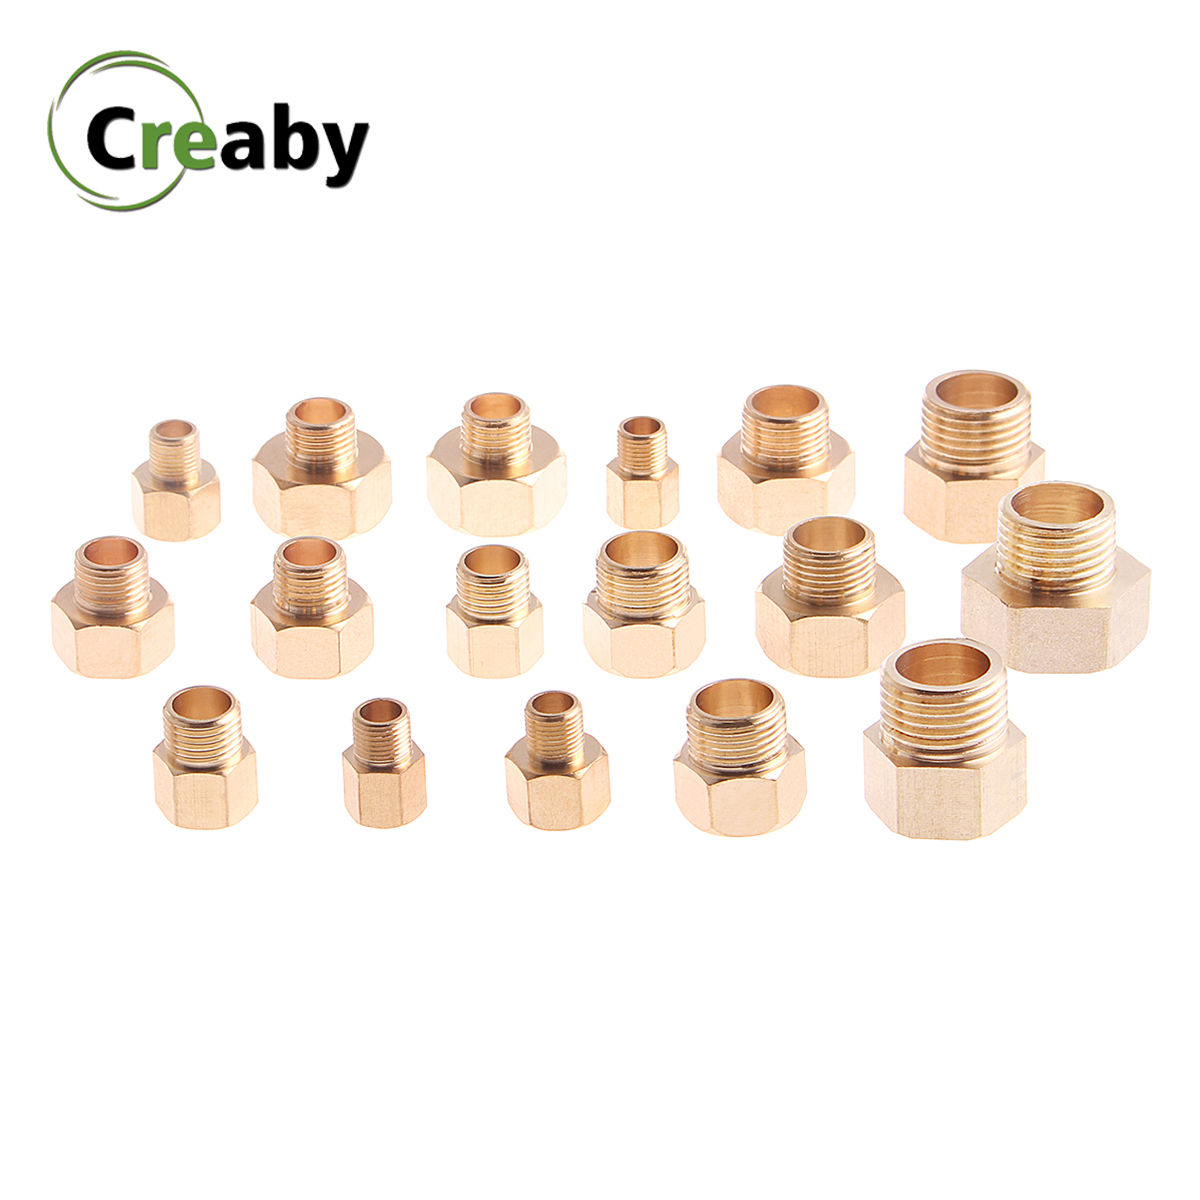 "Copper M/F 1/8"" 1/4"" 3/8"" 1/2"" 3/4"" BSP Male To Female Thread Brass Pipe Fitting Coupler Adapter Hex Pipe Connector Water Gas"